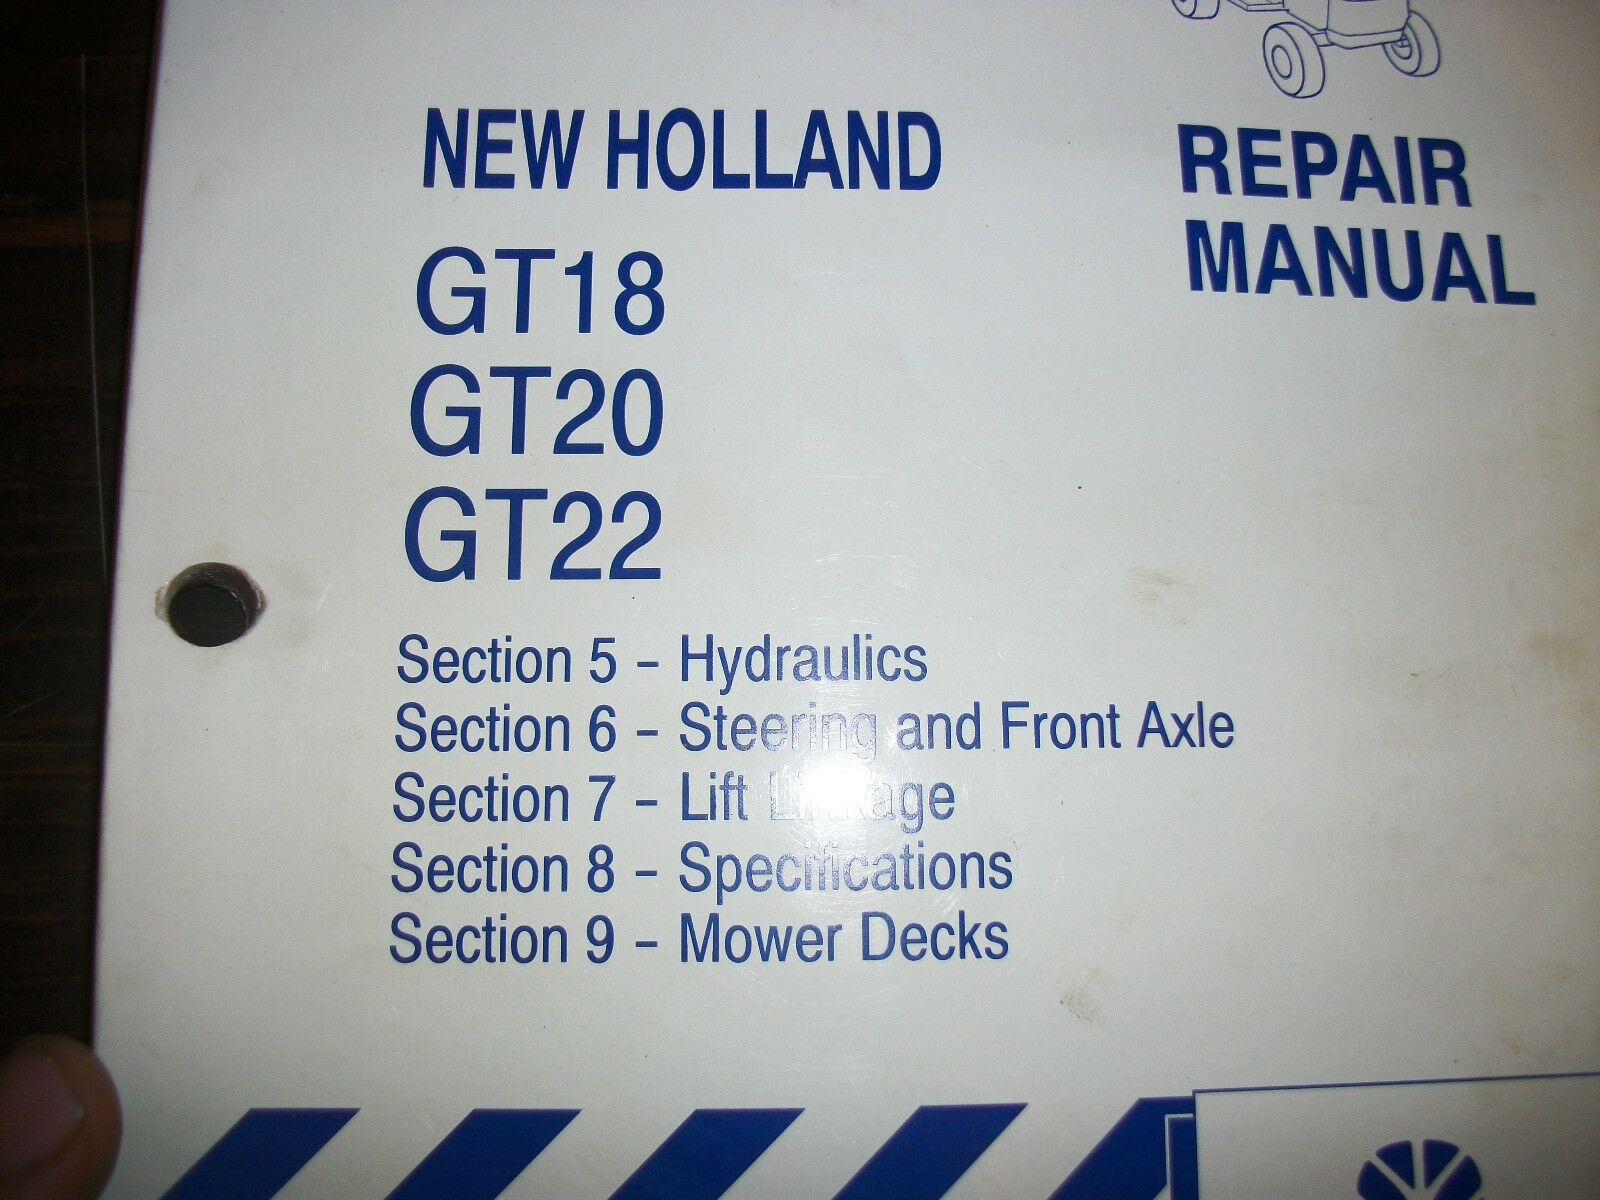 Holland Gt18 Gt20 Gt22 Garden Tractor Repair Manual for sale online on